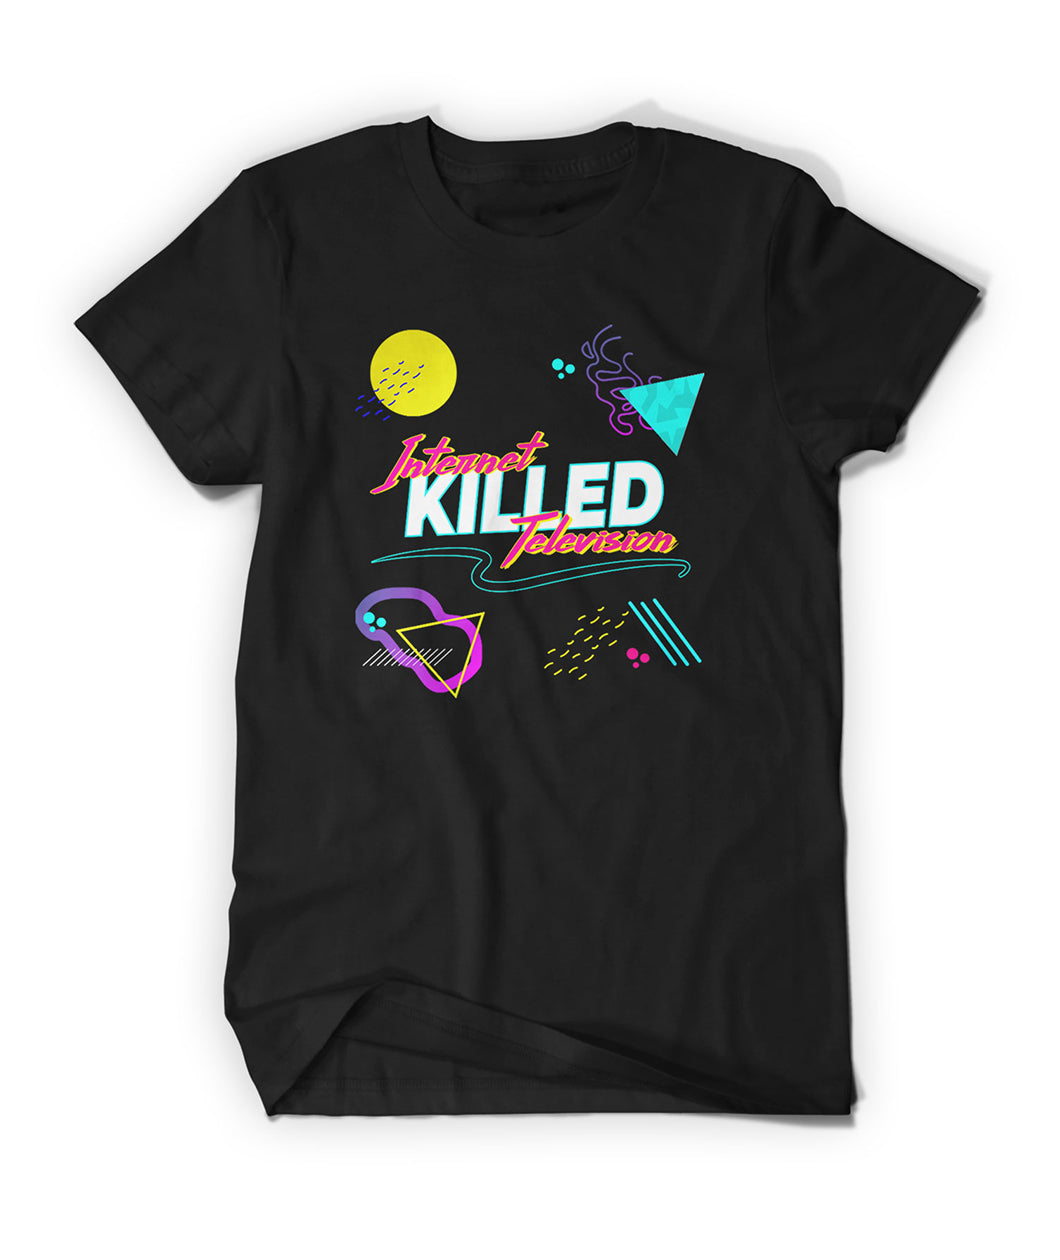 90's Internet Killed Television Shirt